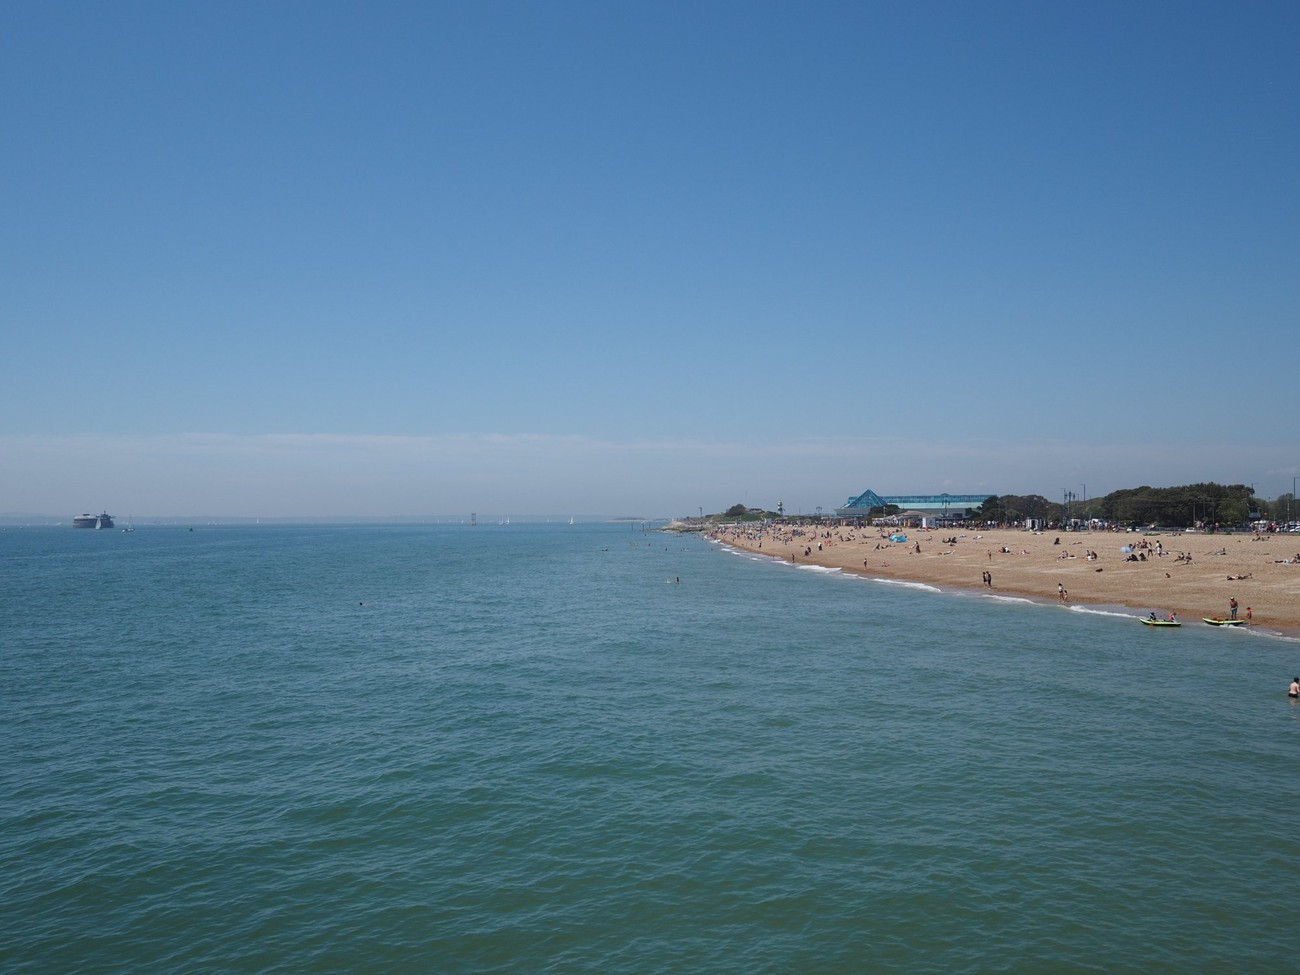 View of beach from South Parade Pier, Southsea